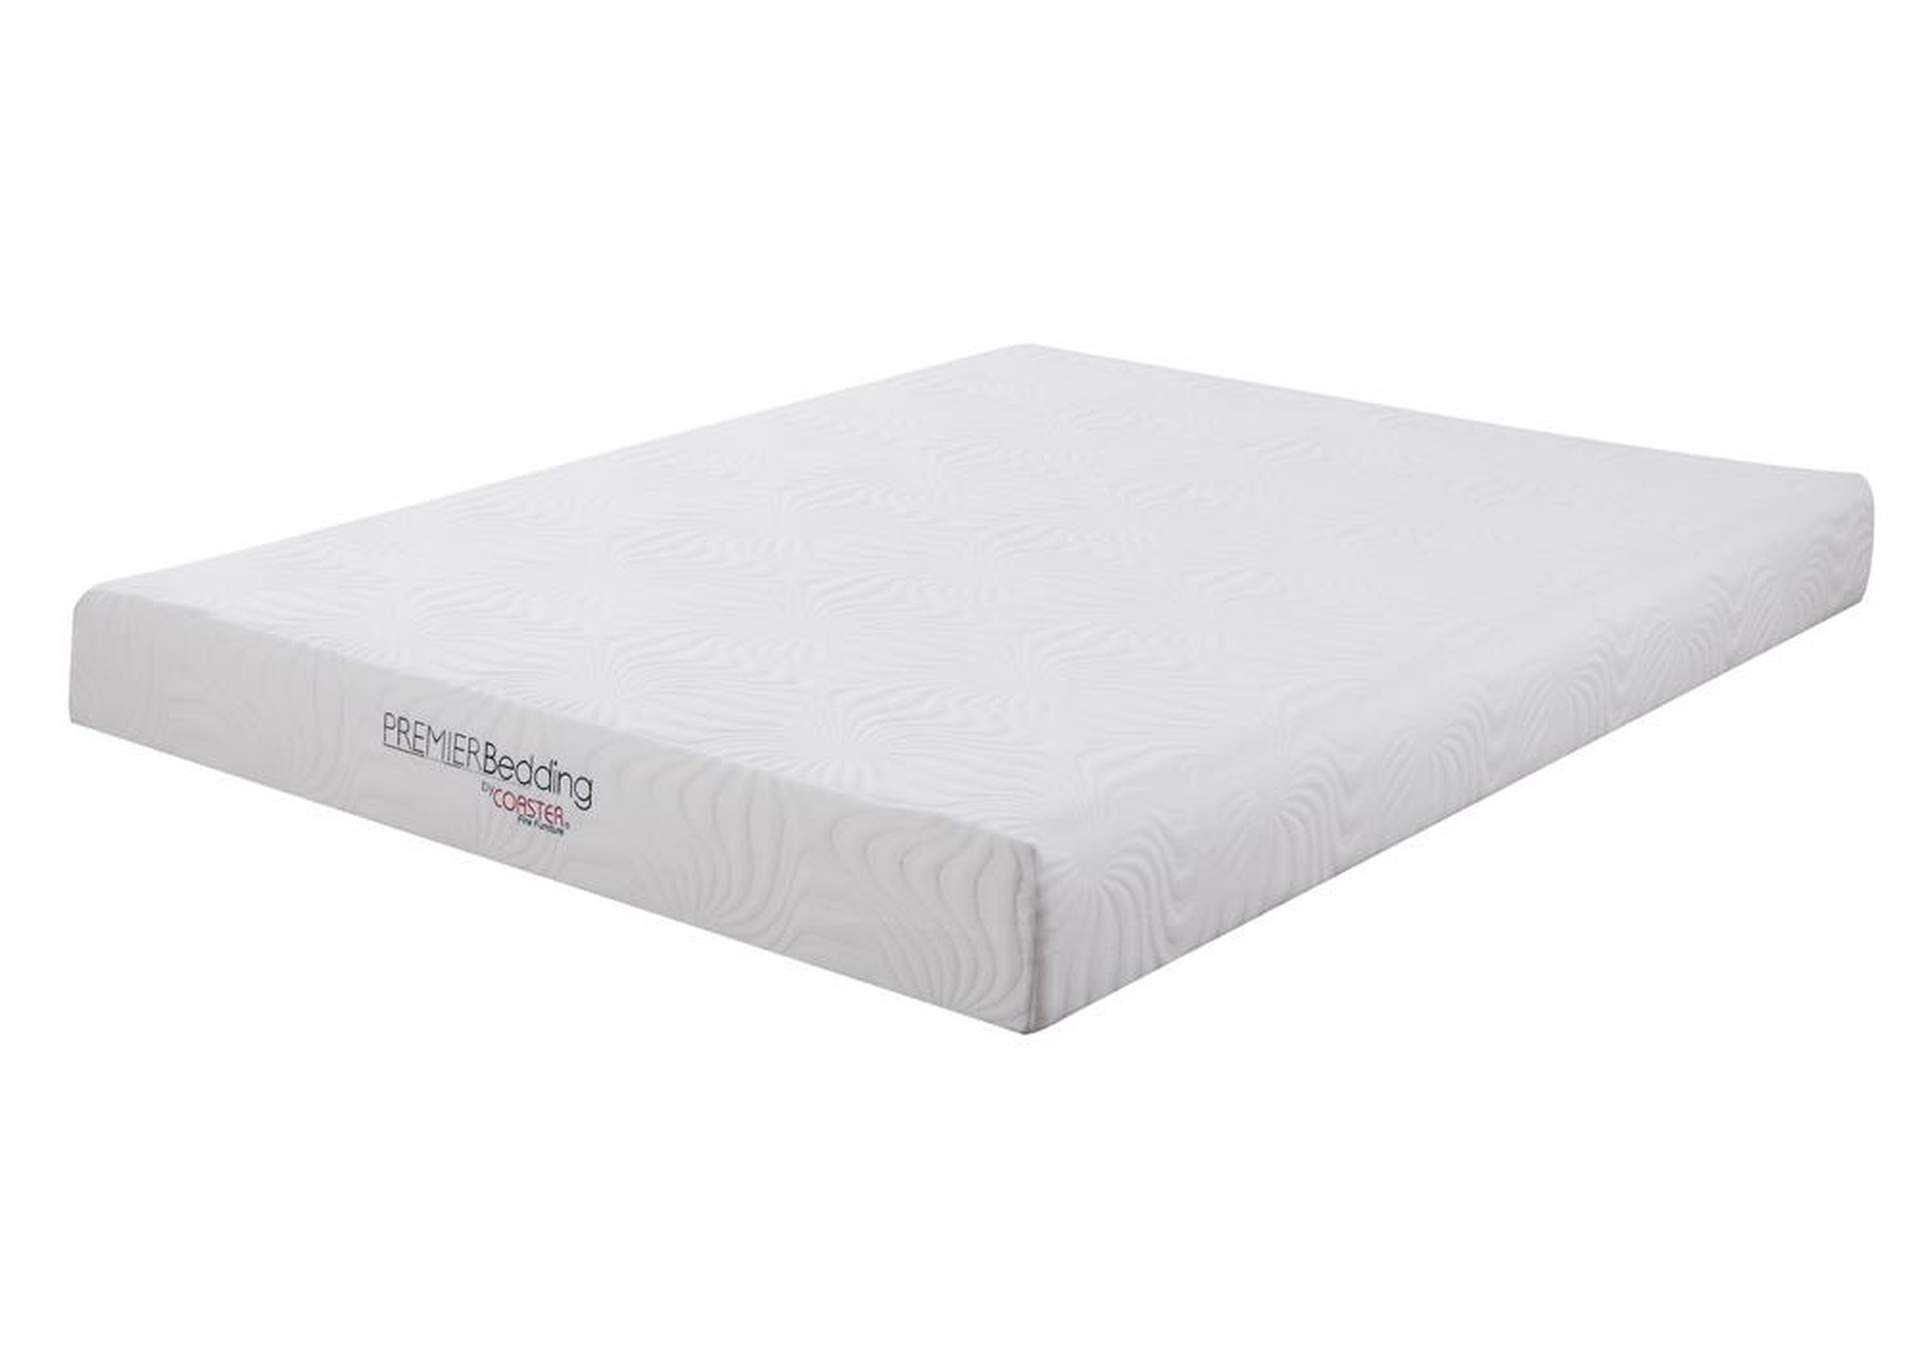 8 King Memory Foam Mattress,Coaster Furniture